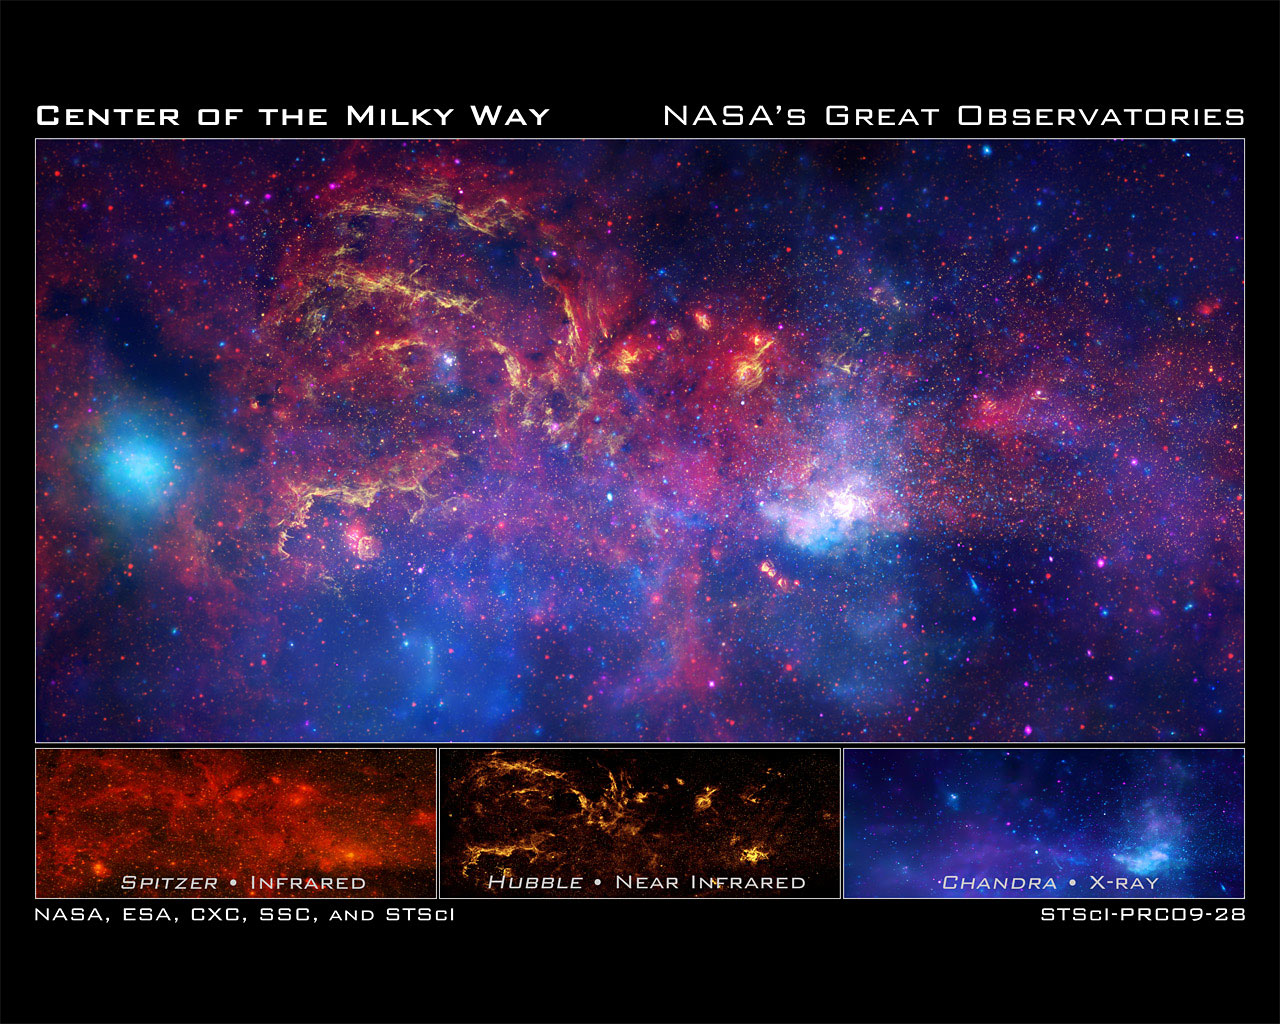 NASAs Great Observatories